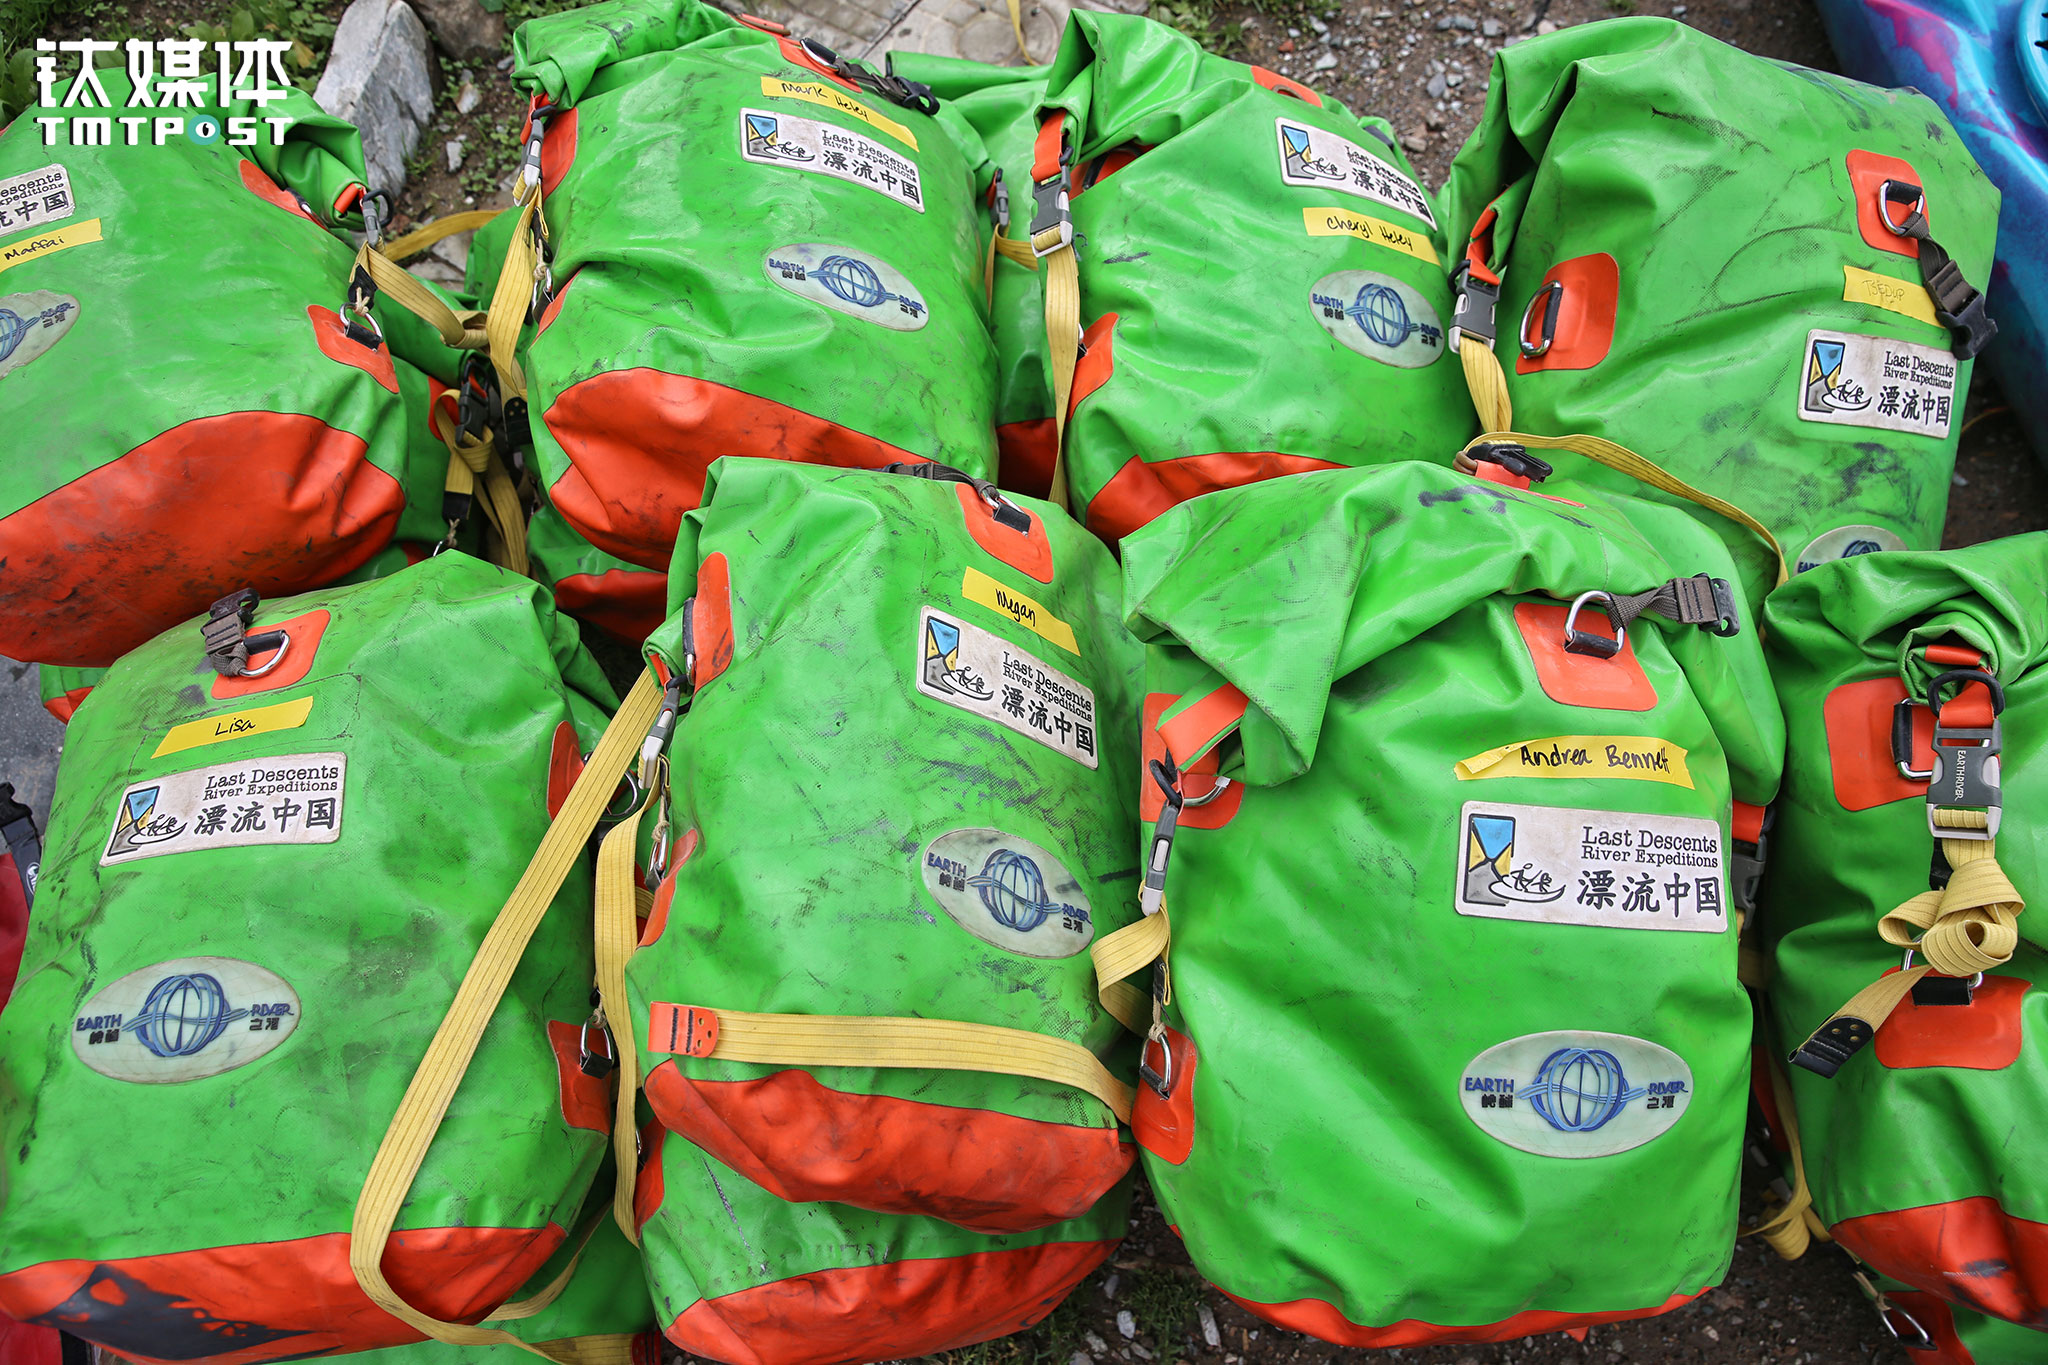 The water-proof bags contained sleeping bags and some belongings of the guests. In 2006, Travis Winn, founded Last Descents, which means the last rafting. Hydropower stations are now being built around the country, making it increasingly impossible for raft enthusiasts to raft in many regions in China. That said, a first raft in a certain river might be the last one.